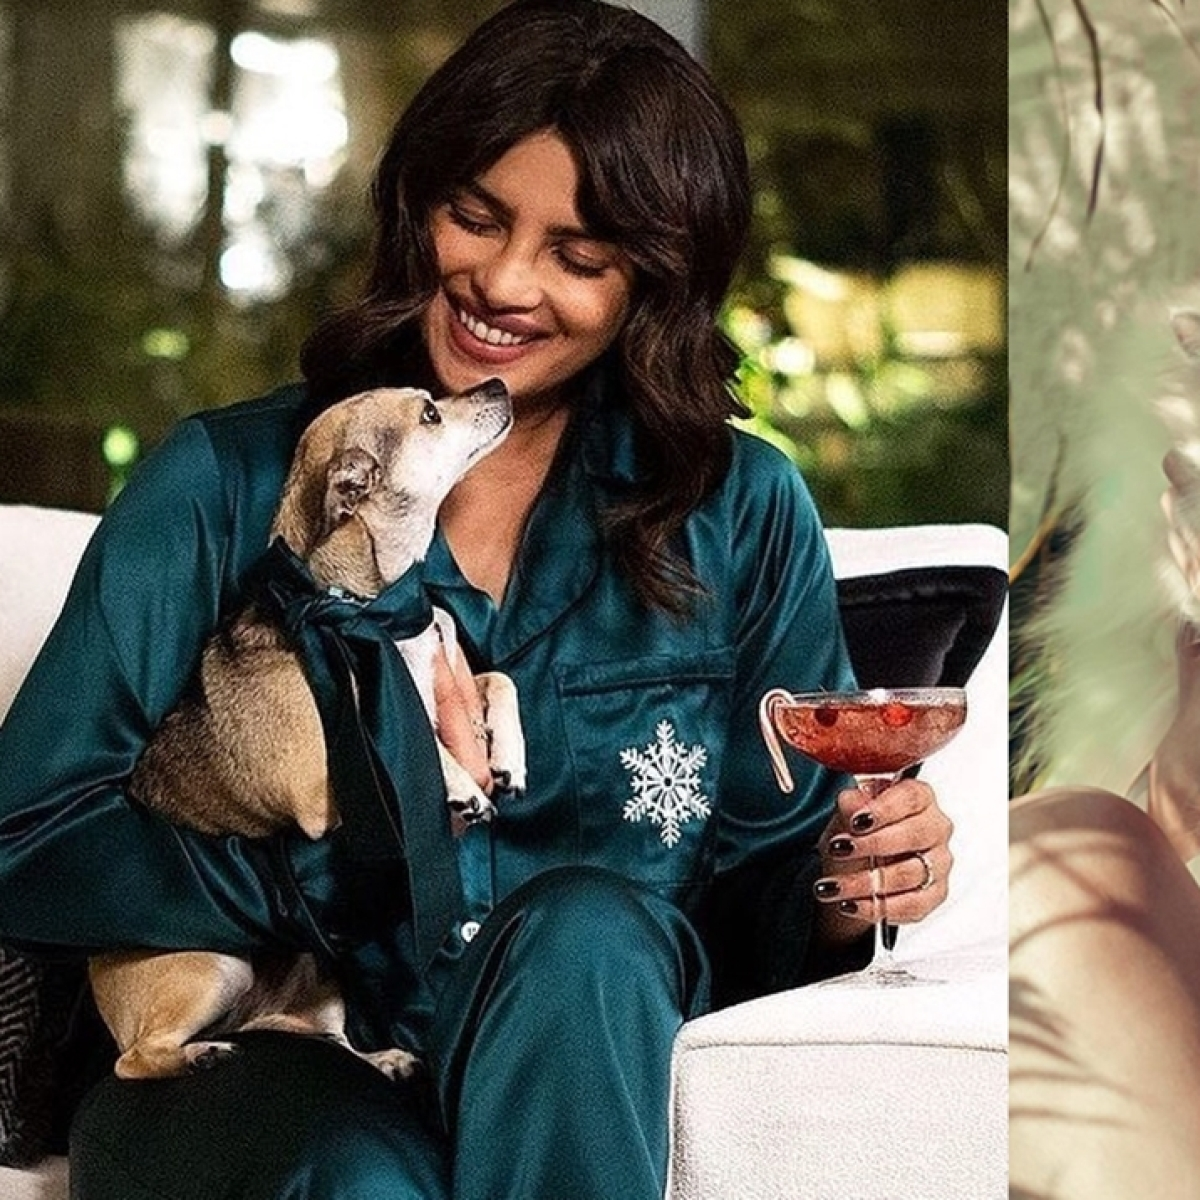 National Pet Day 2021: From Priyanka Chopra to Alia Bhatt - celebs and their furry friends